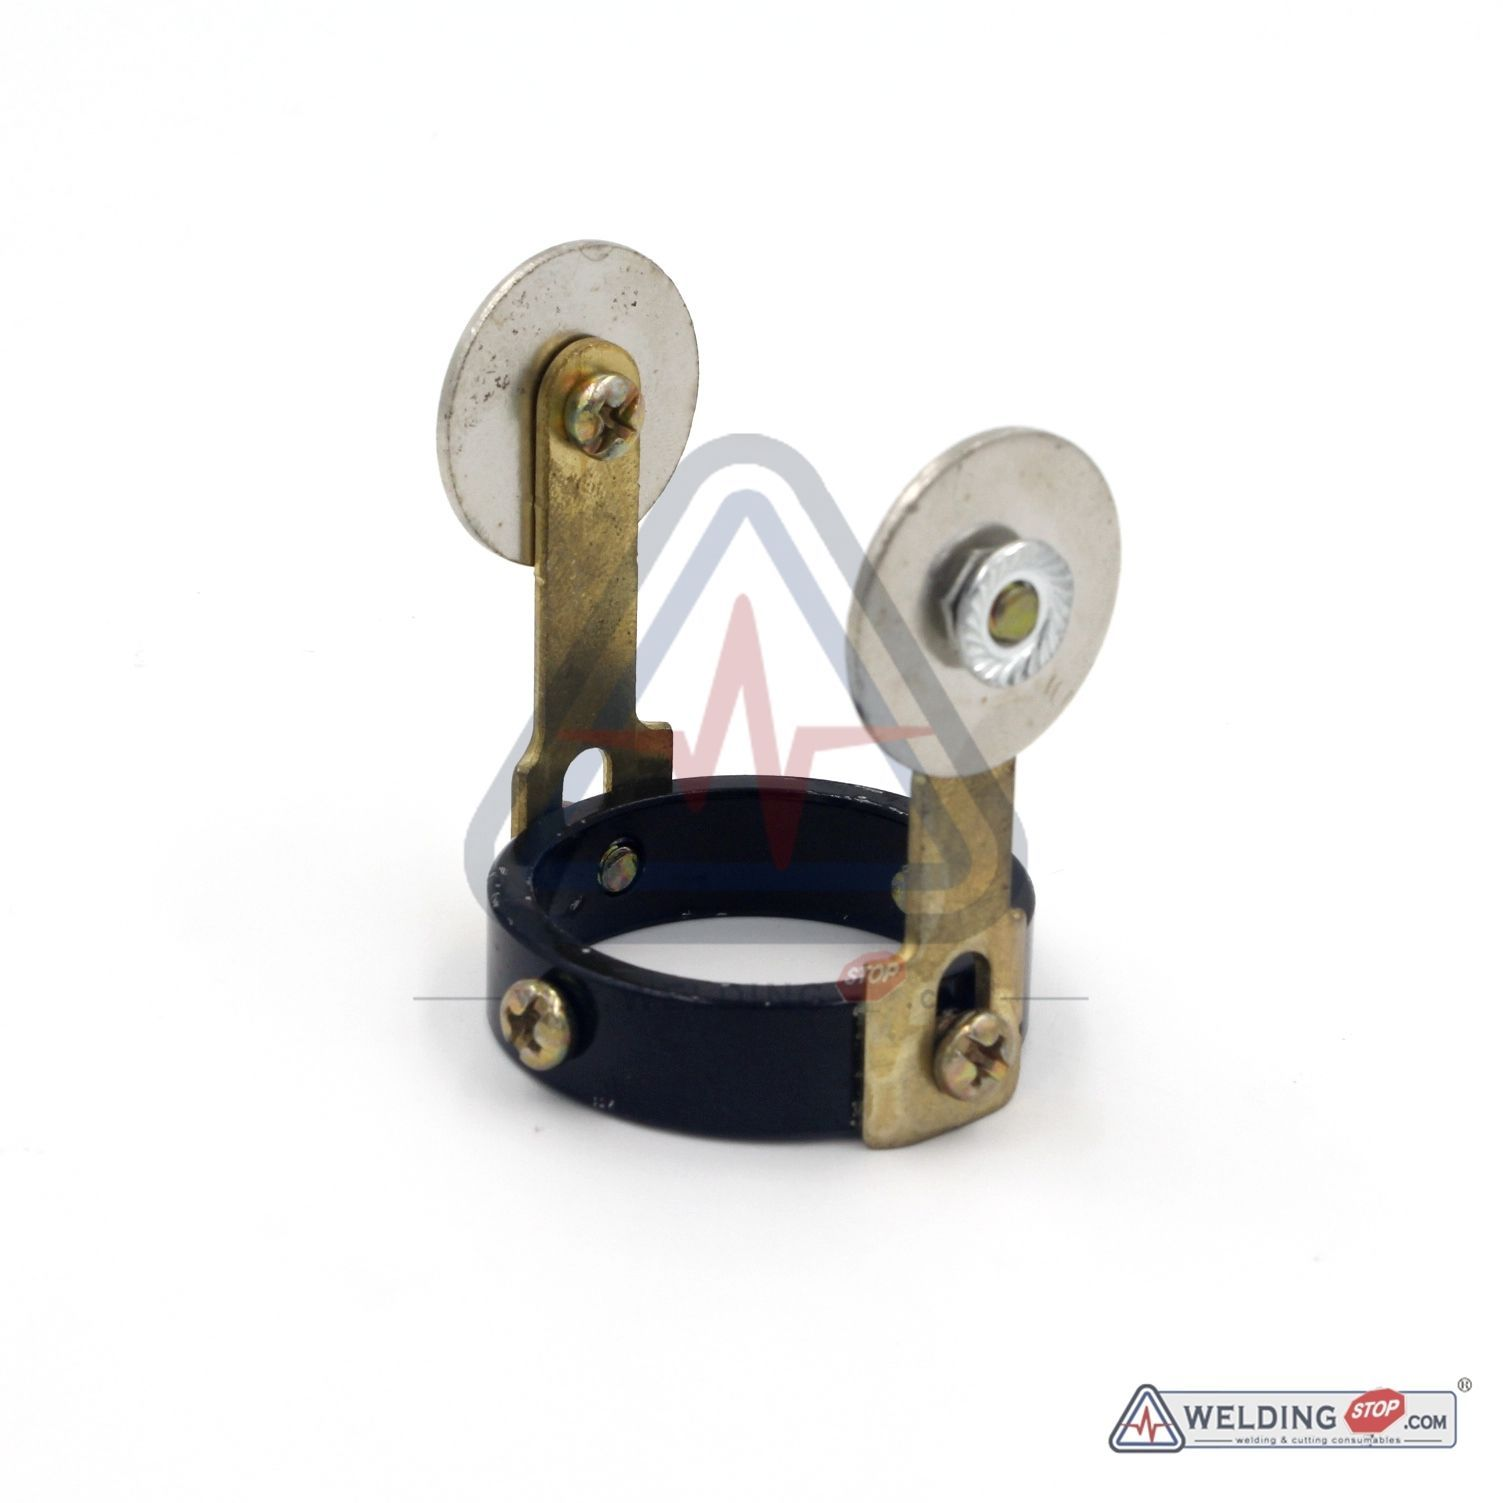 P80 P-80 Plasma Cuting Torch Consumables ROLLER GUIDE SPACER Free Shipping (Cheap Economic Verson)